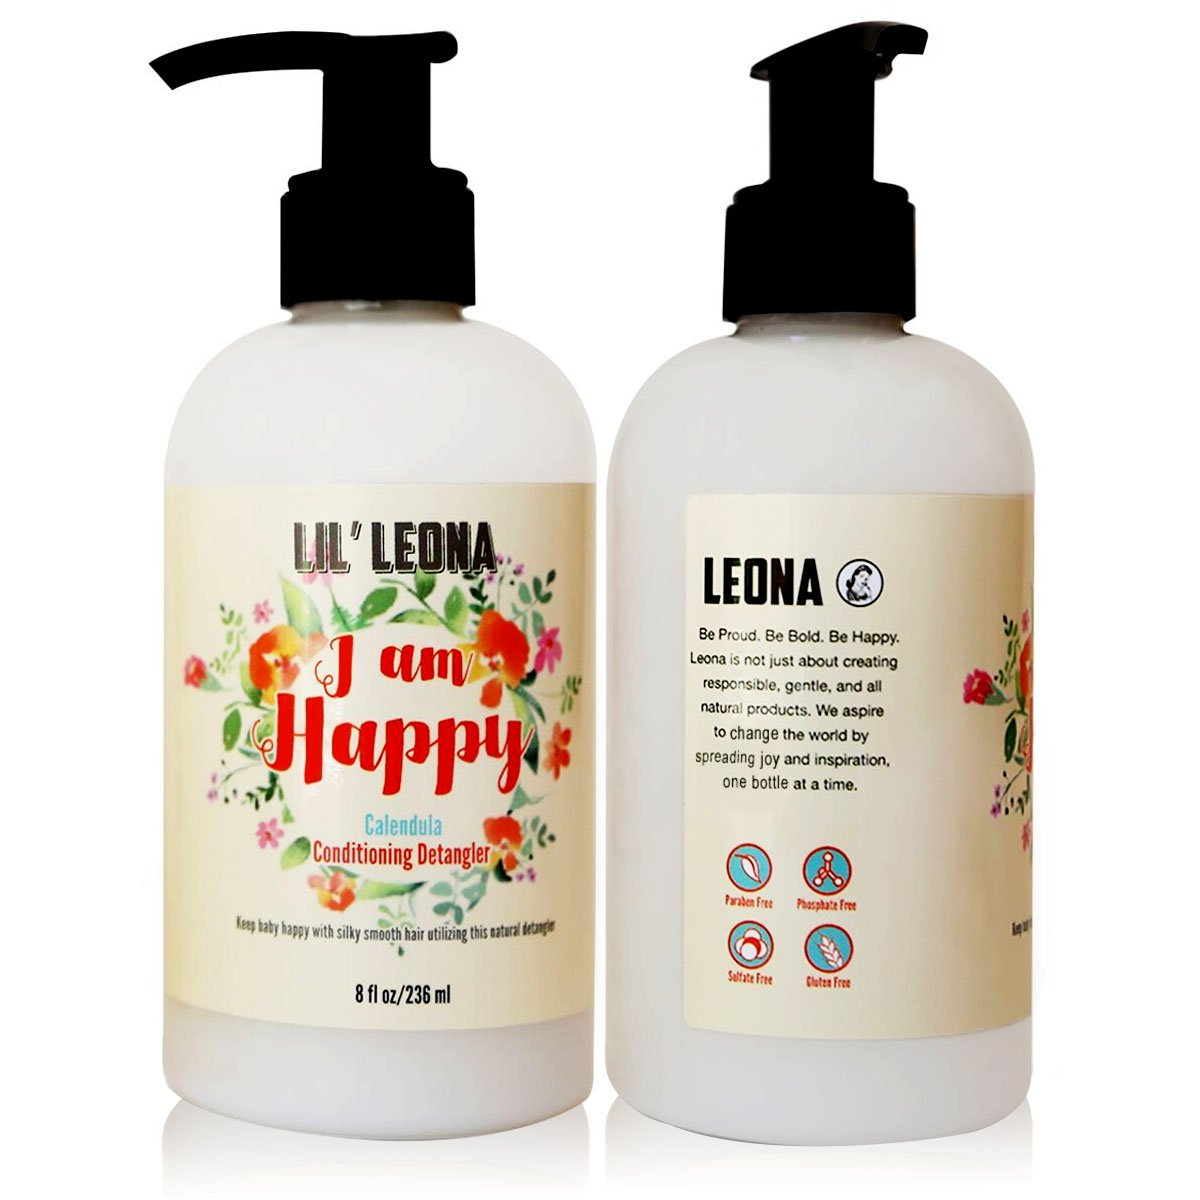 Childrens Hair Conditioner & Detangler by Lil Leona: Safe and Non-Toxic  Cleansing Conditioner